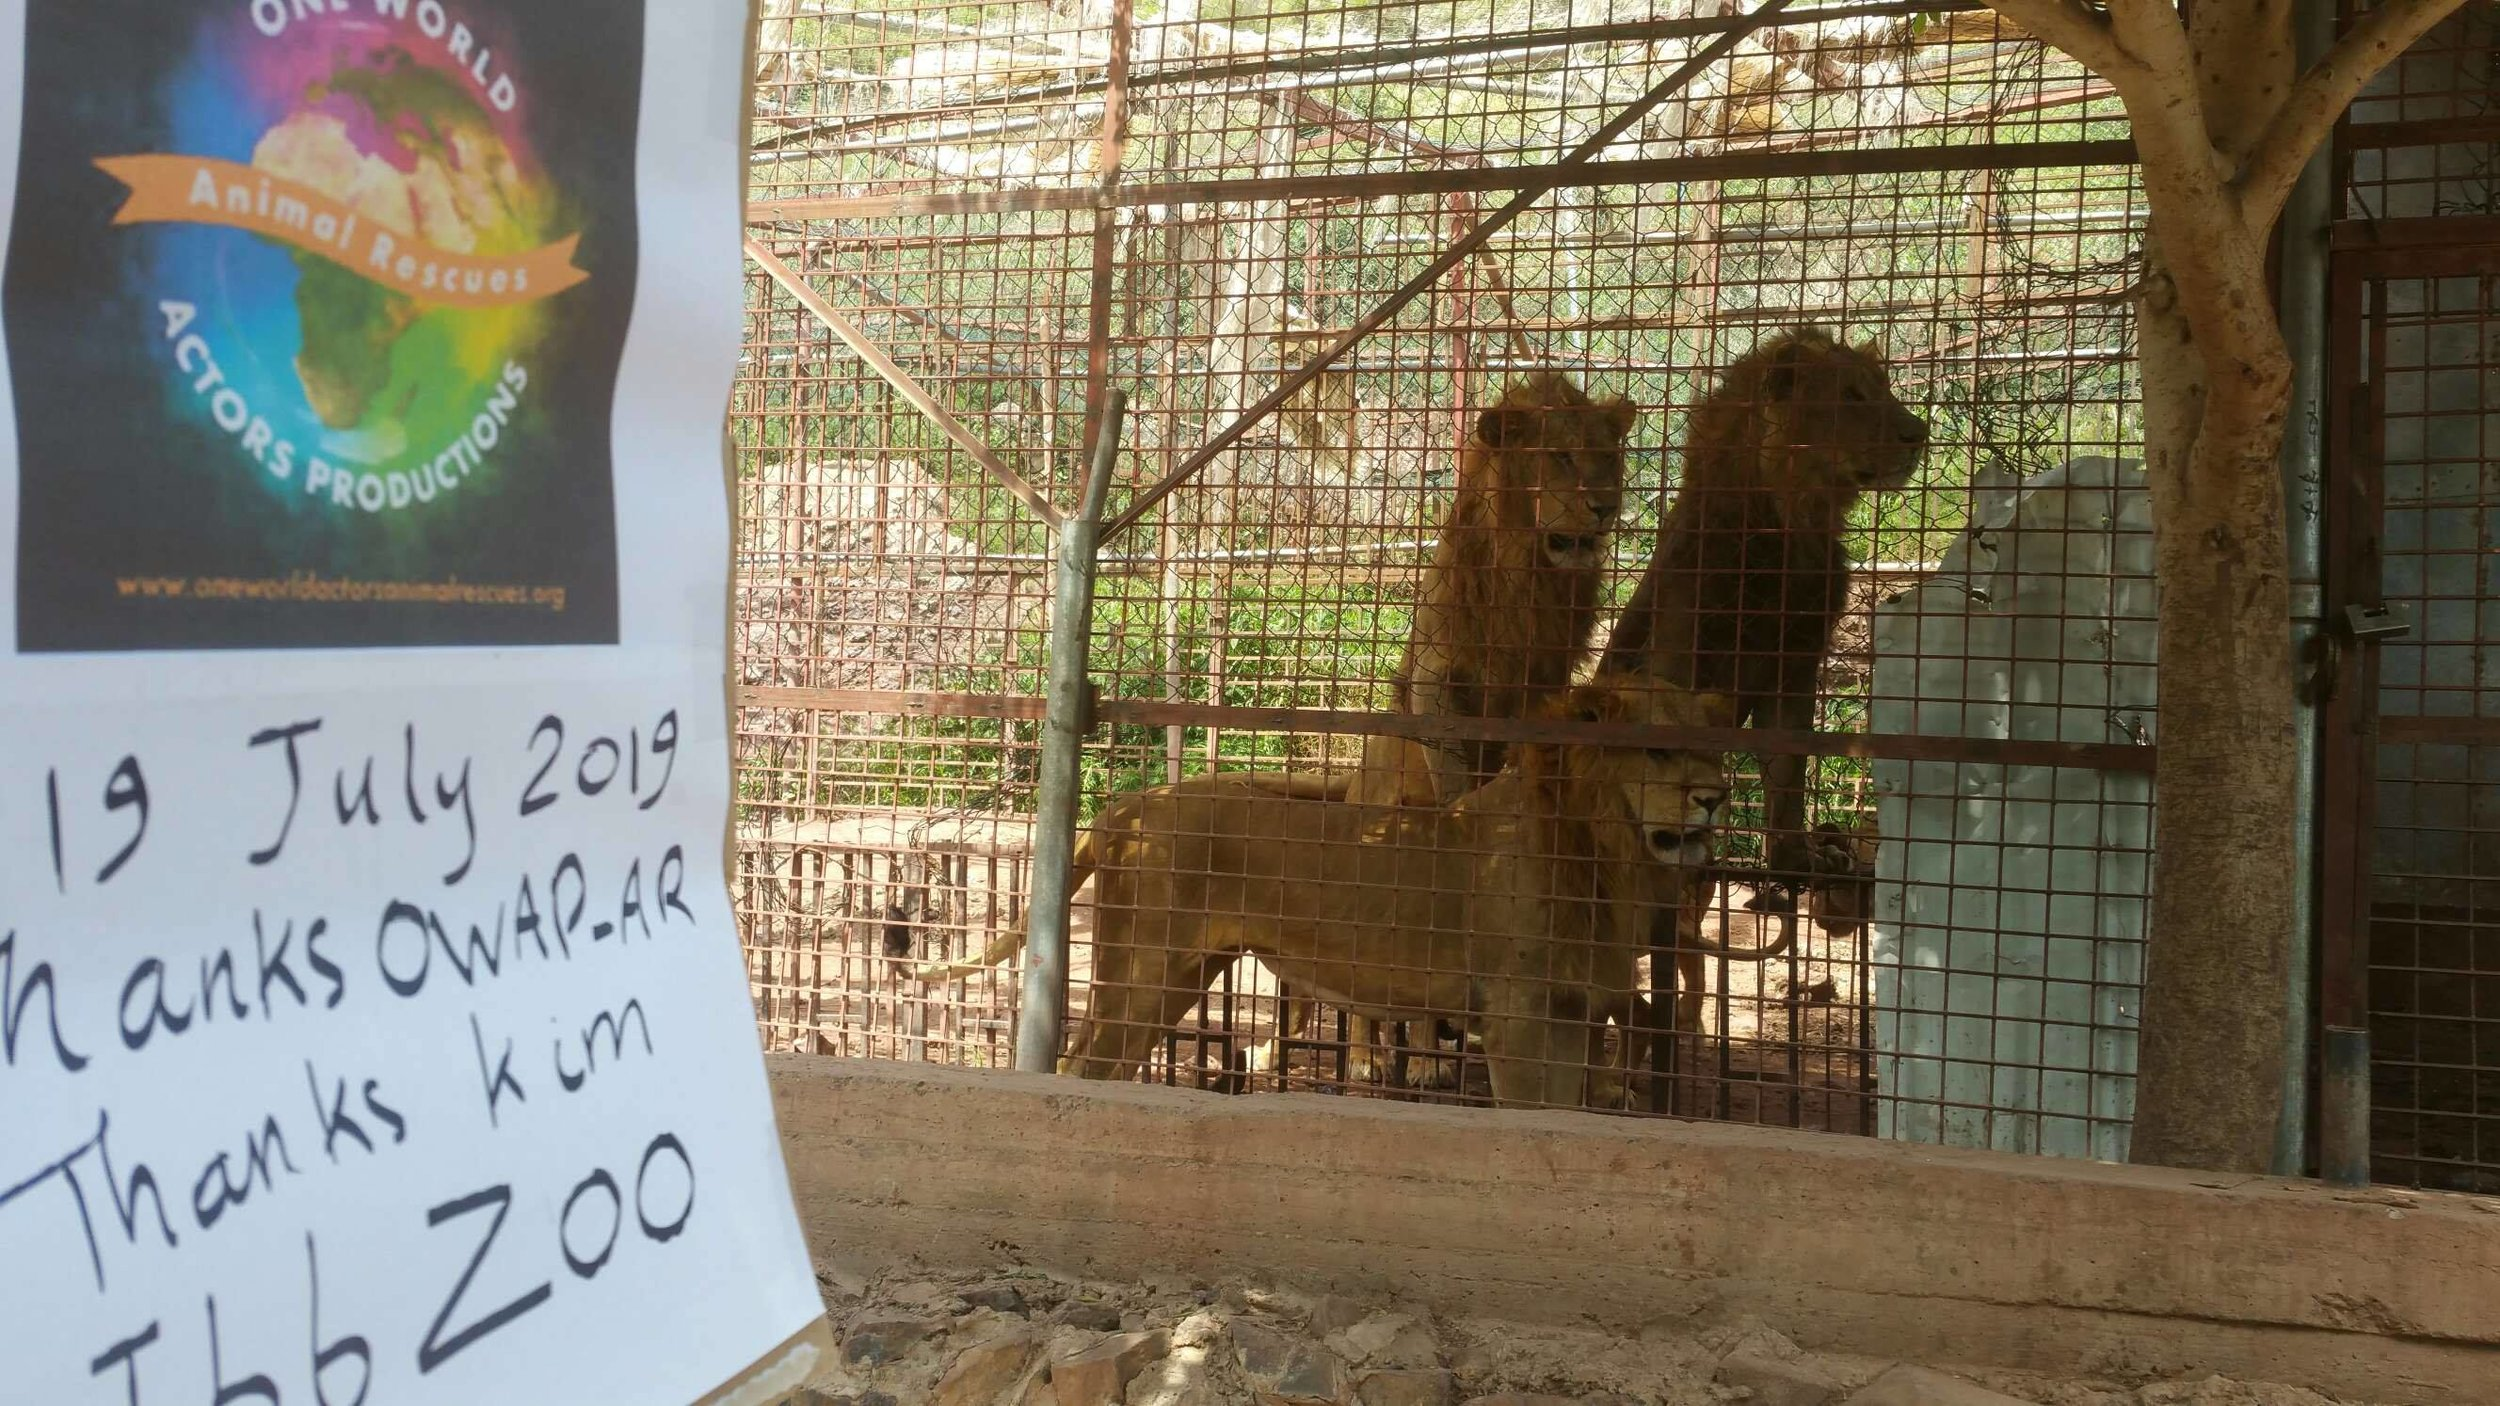 ibb zoo 19 July 2019 OWAP AR sign 3 young males yemen rescue.jpg